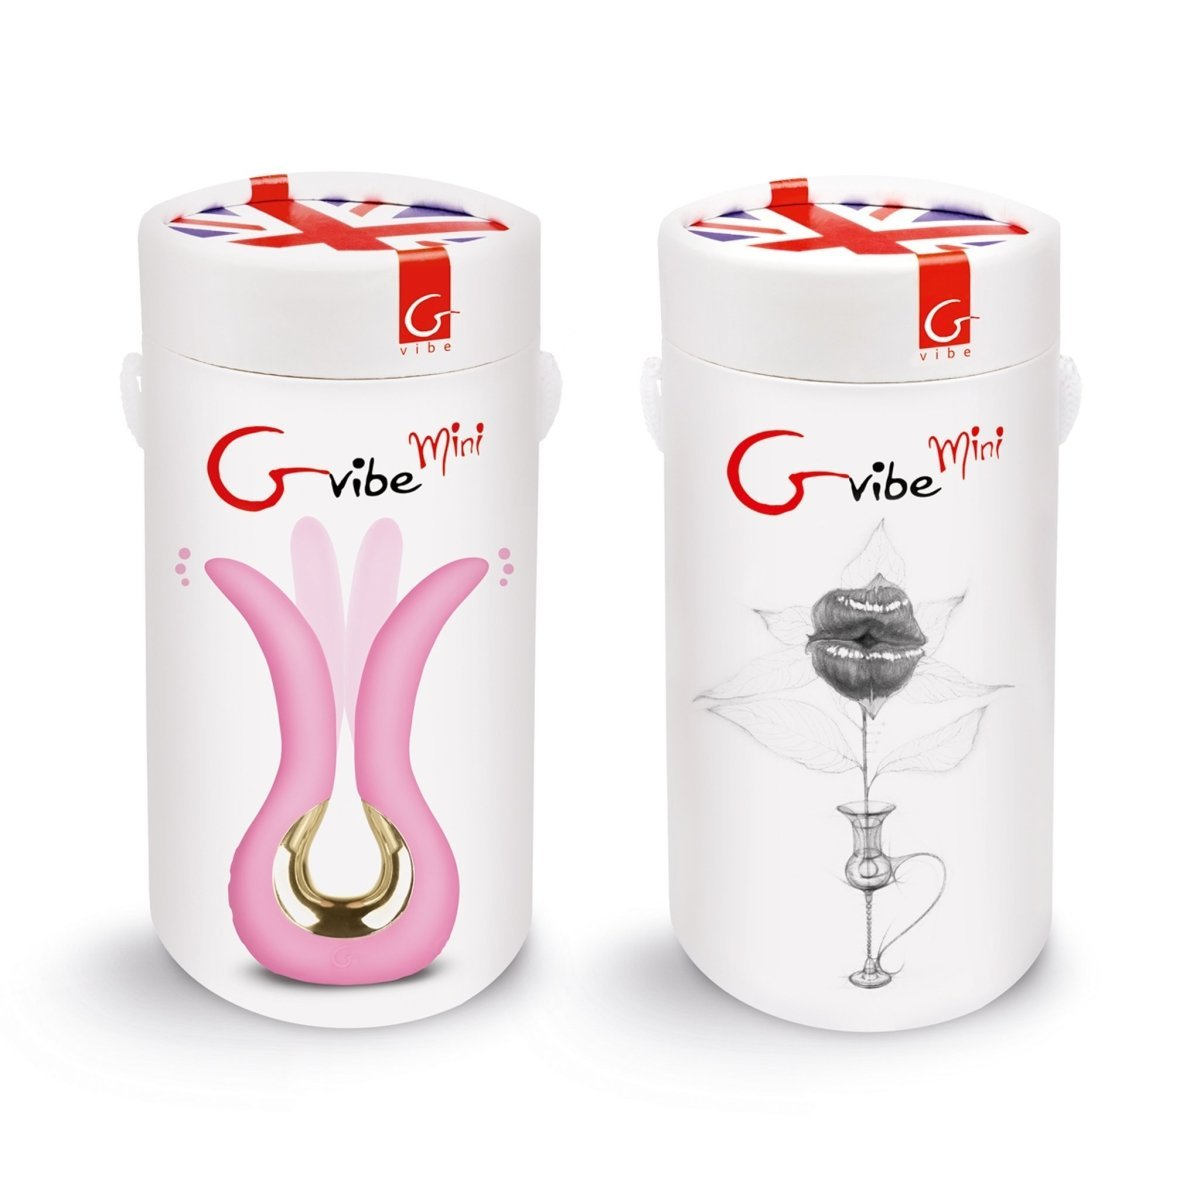 Gvibe MINI – Dual Mini Vibrator To Stimulate The Clitoris, Vagina And Anus